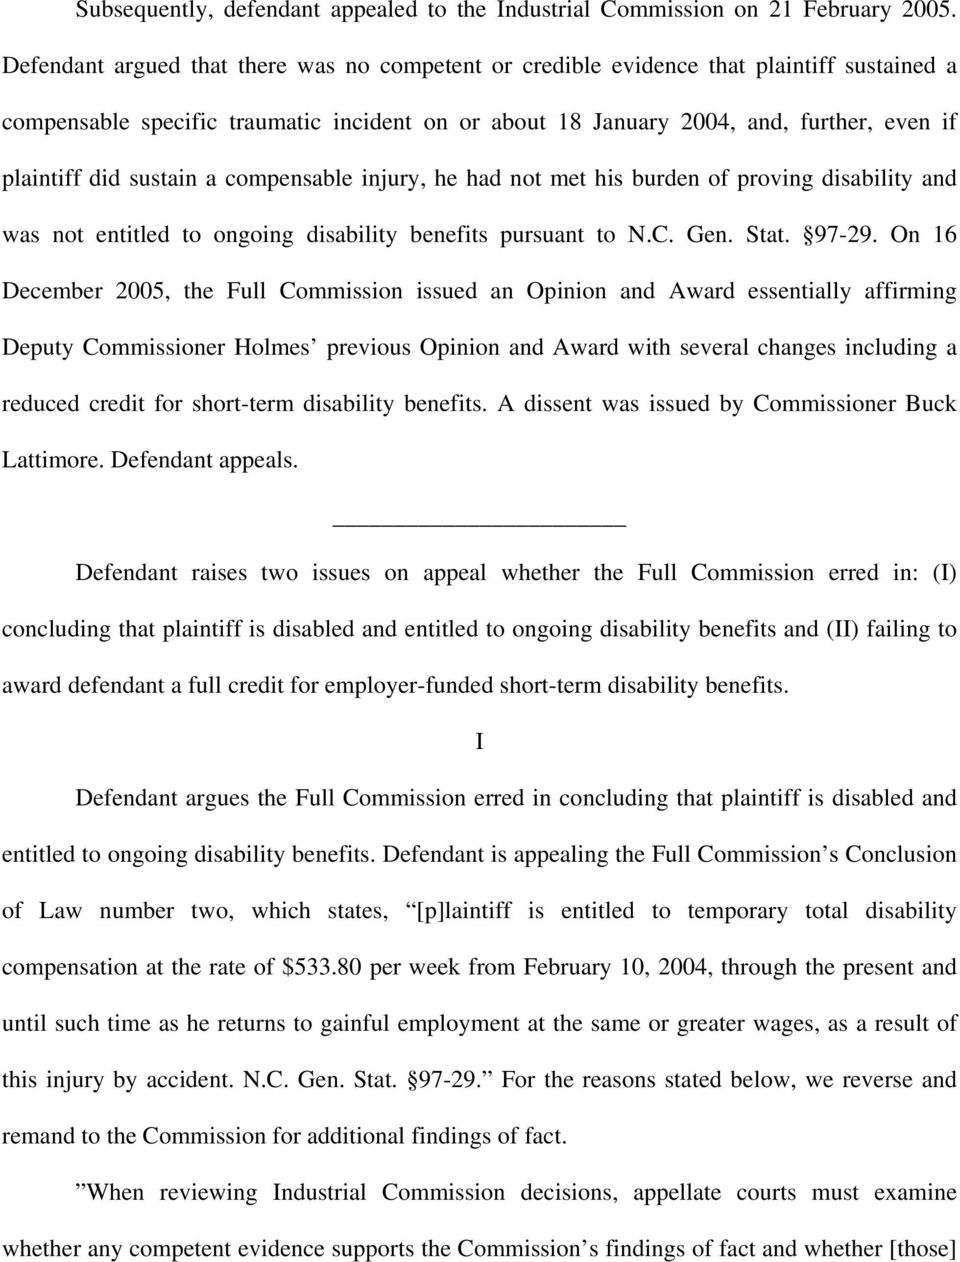 sustain a compensable injury, he had not met his burden of proving disability and was not entitled to ongoing disability benefits pursuant to N.C. Gen. Stat. 97-29.